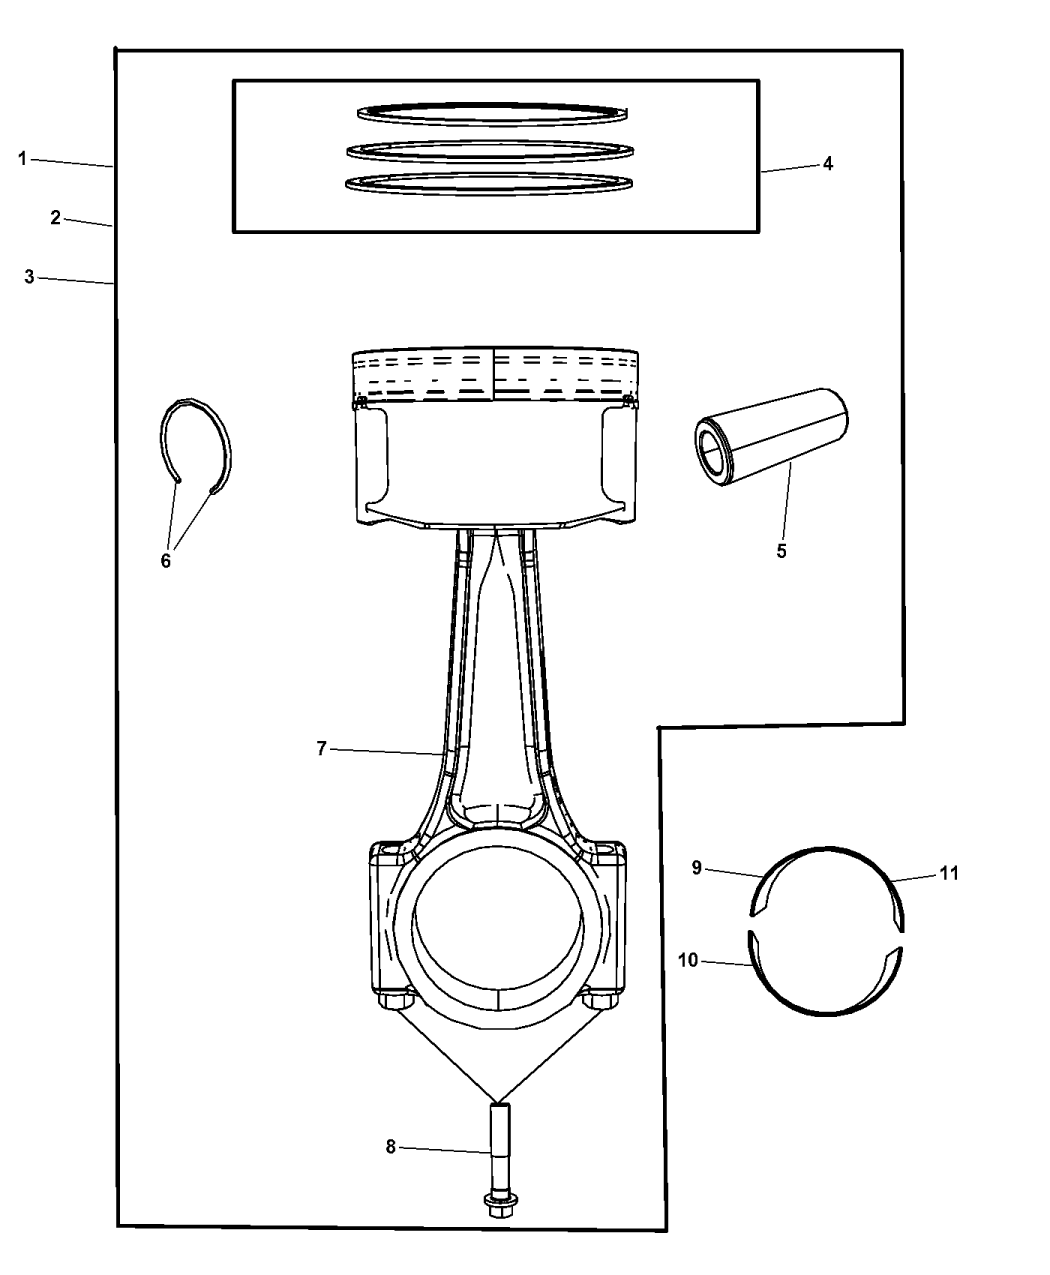 2009 Chrysler Sebring Pistons Piston Rings Connecting Rods Engine Diagram Rod Bearing Thumbnail